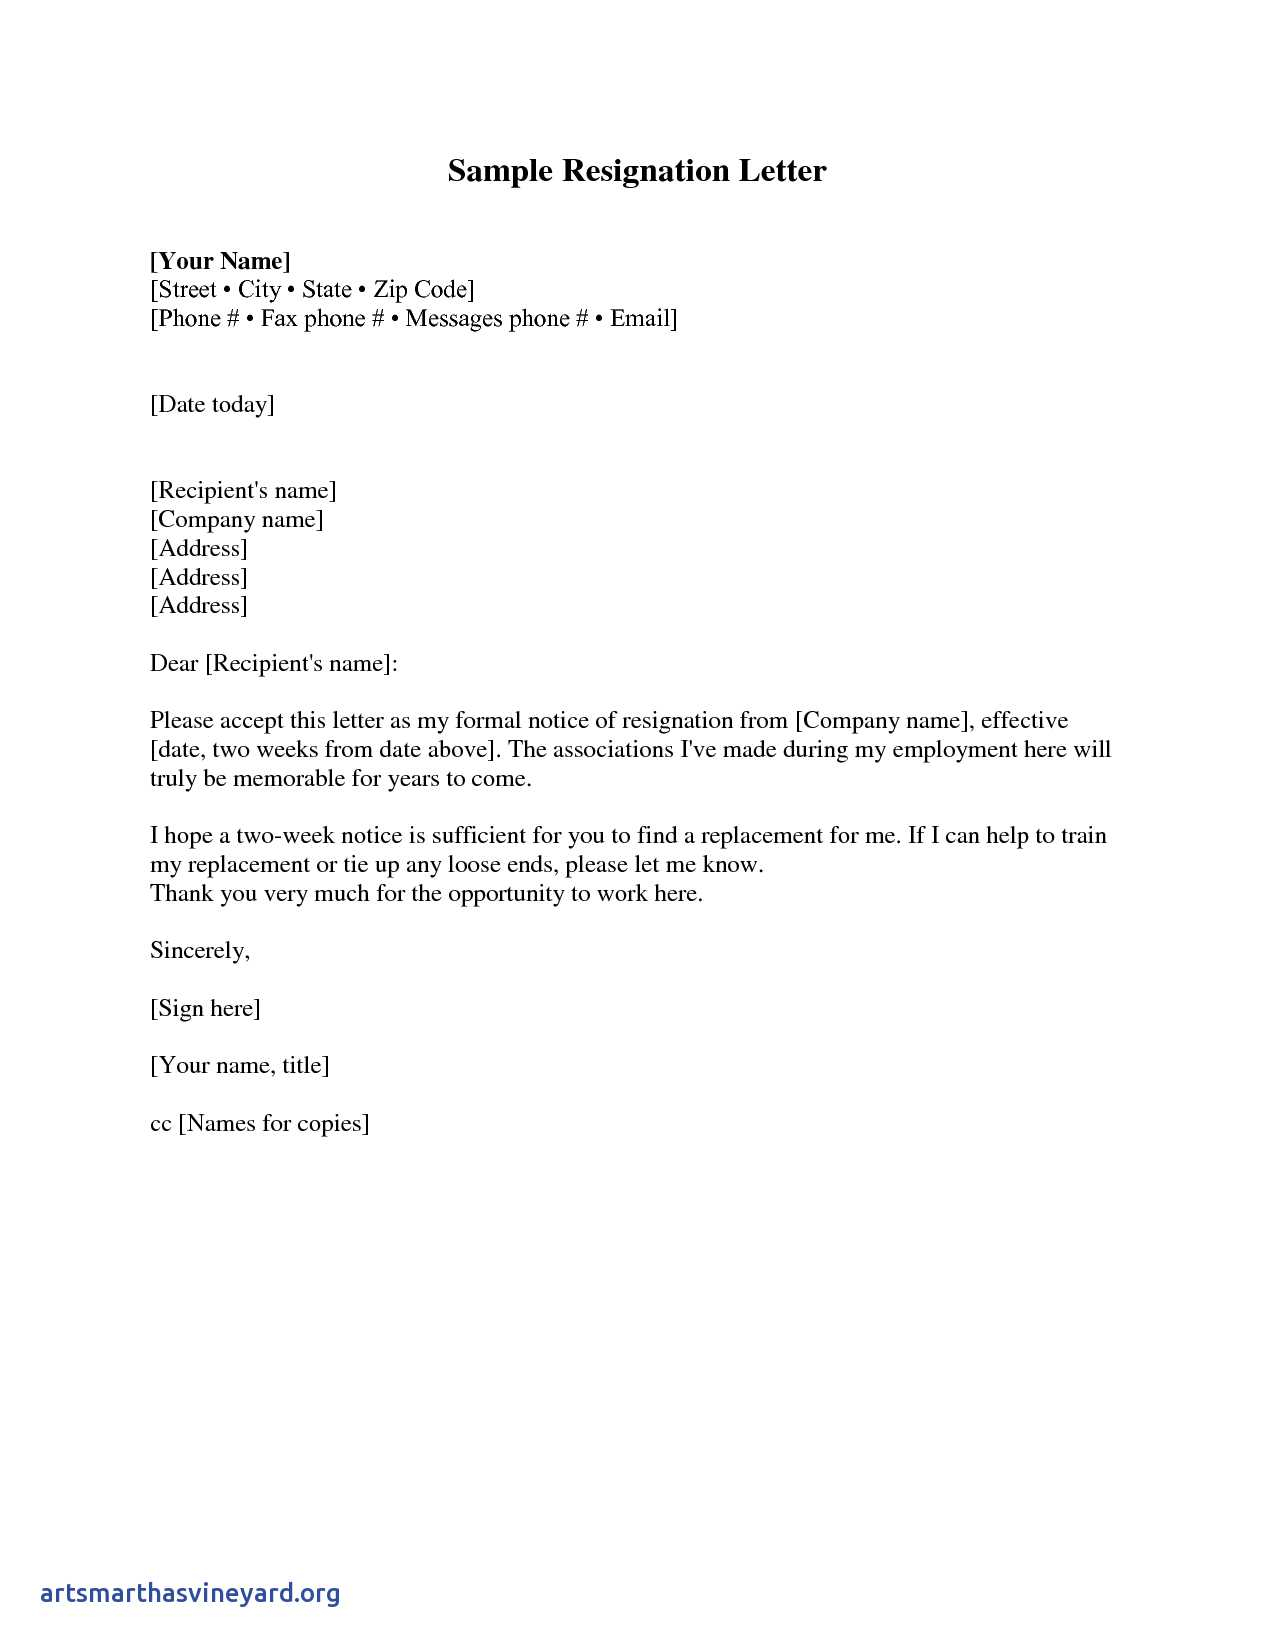 Resignation Letter Template Free Download - Resignation Letter Sample 2 Weeks Notice Free2img From Two Week